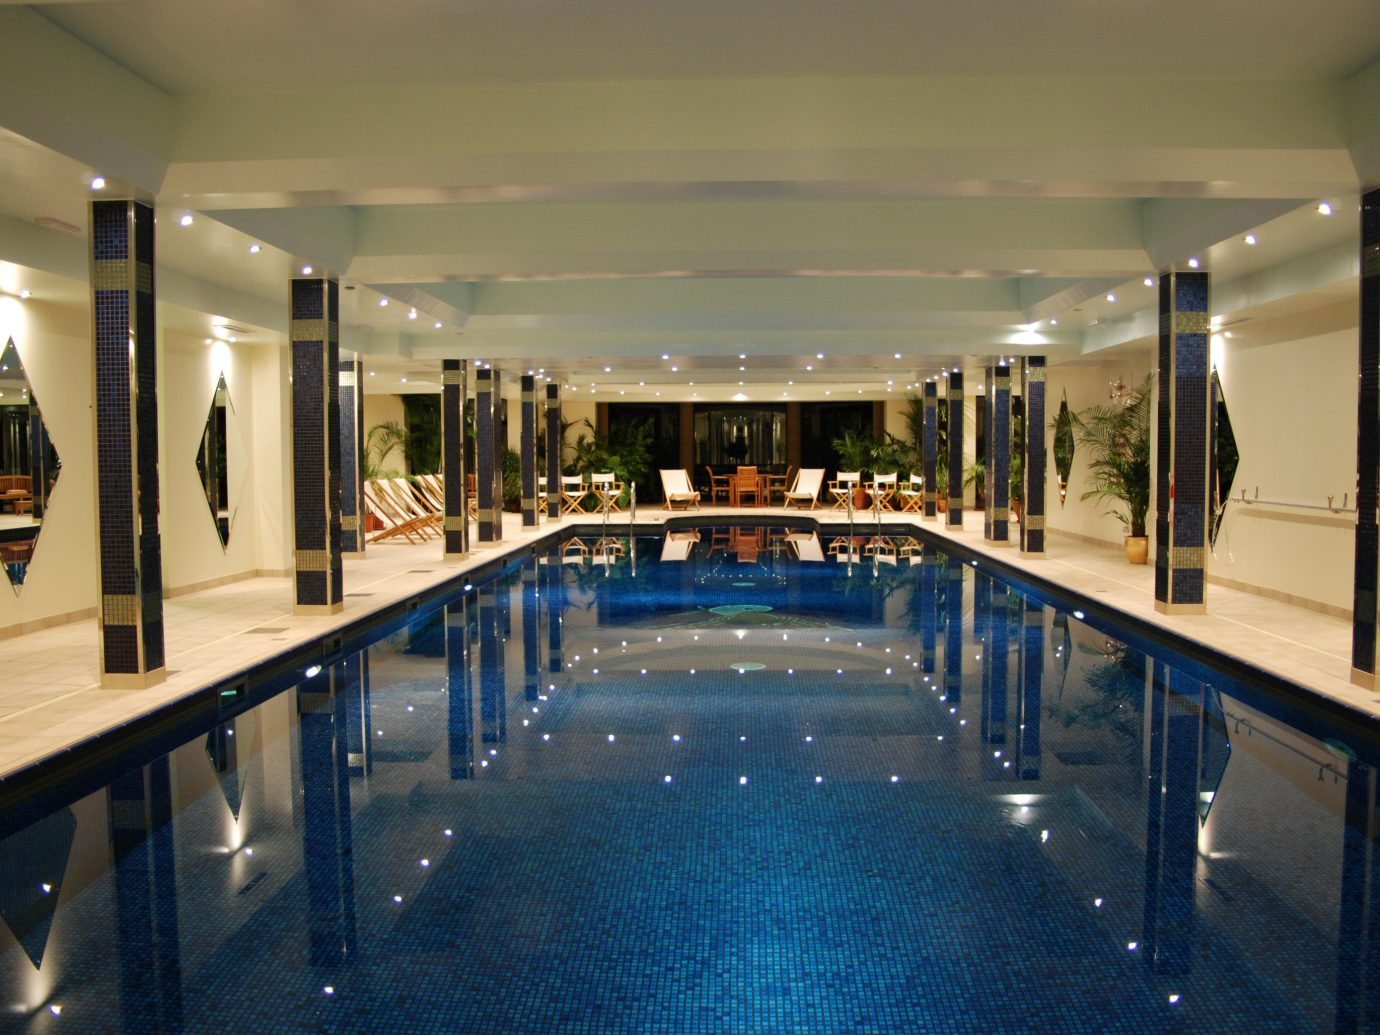 Hotels indoor ceiling wall floor swimming pool estate Lobby interior design convention center shopping mall several